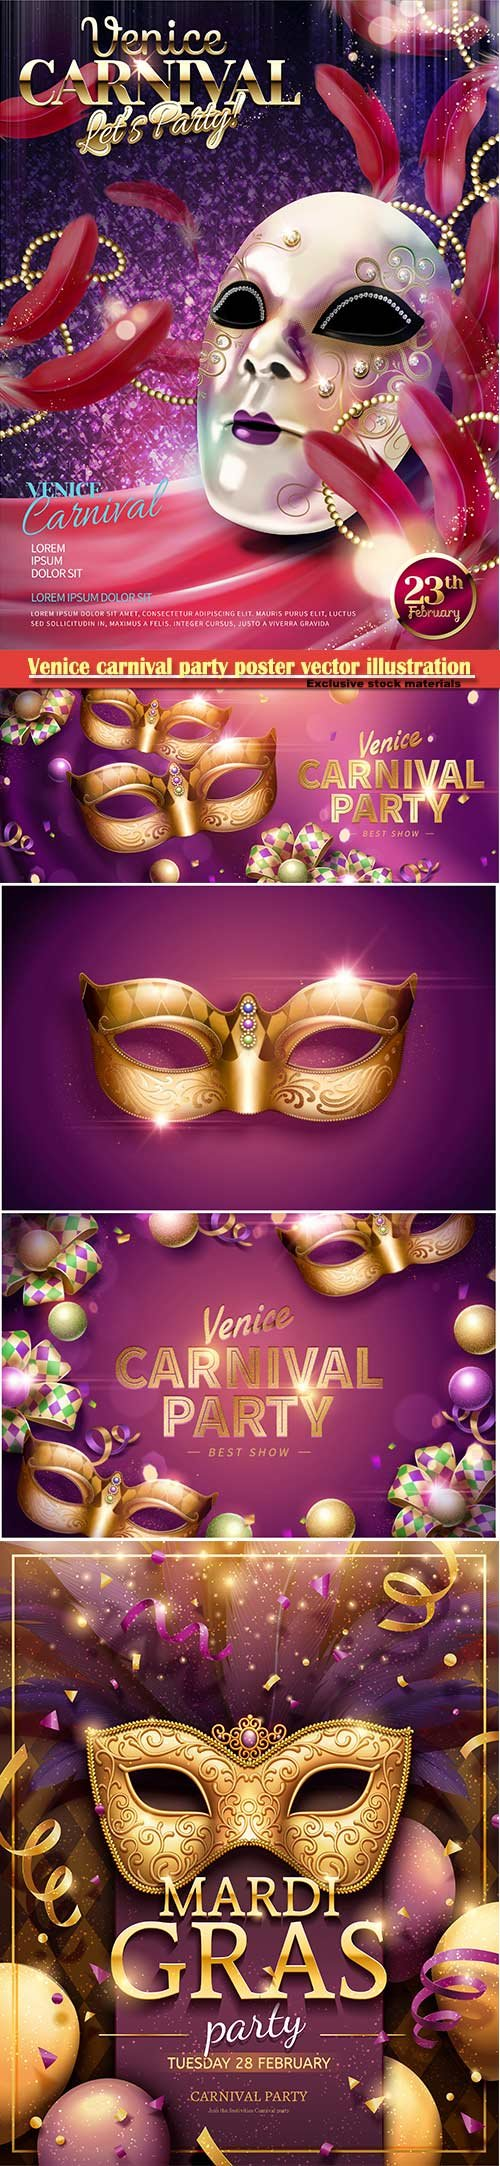 Venice carnival design vector illustration, Mardi gras # 2